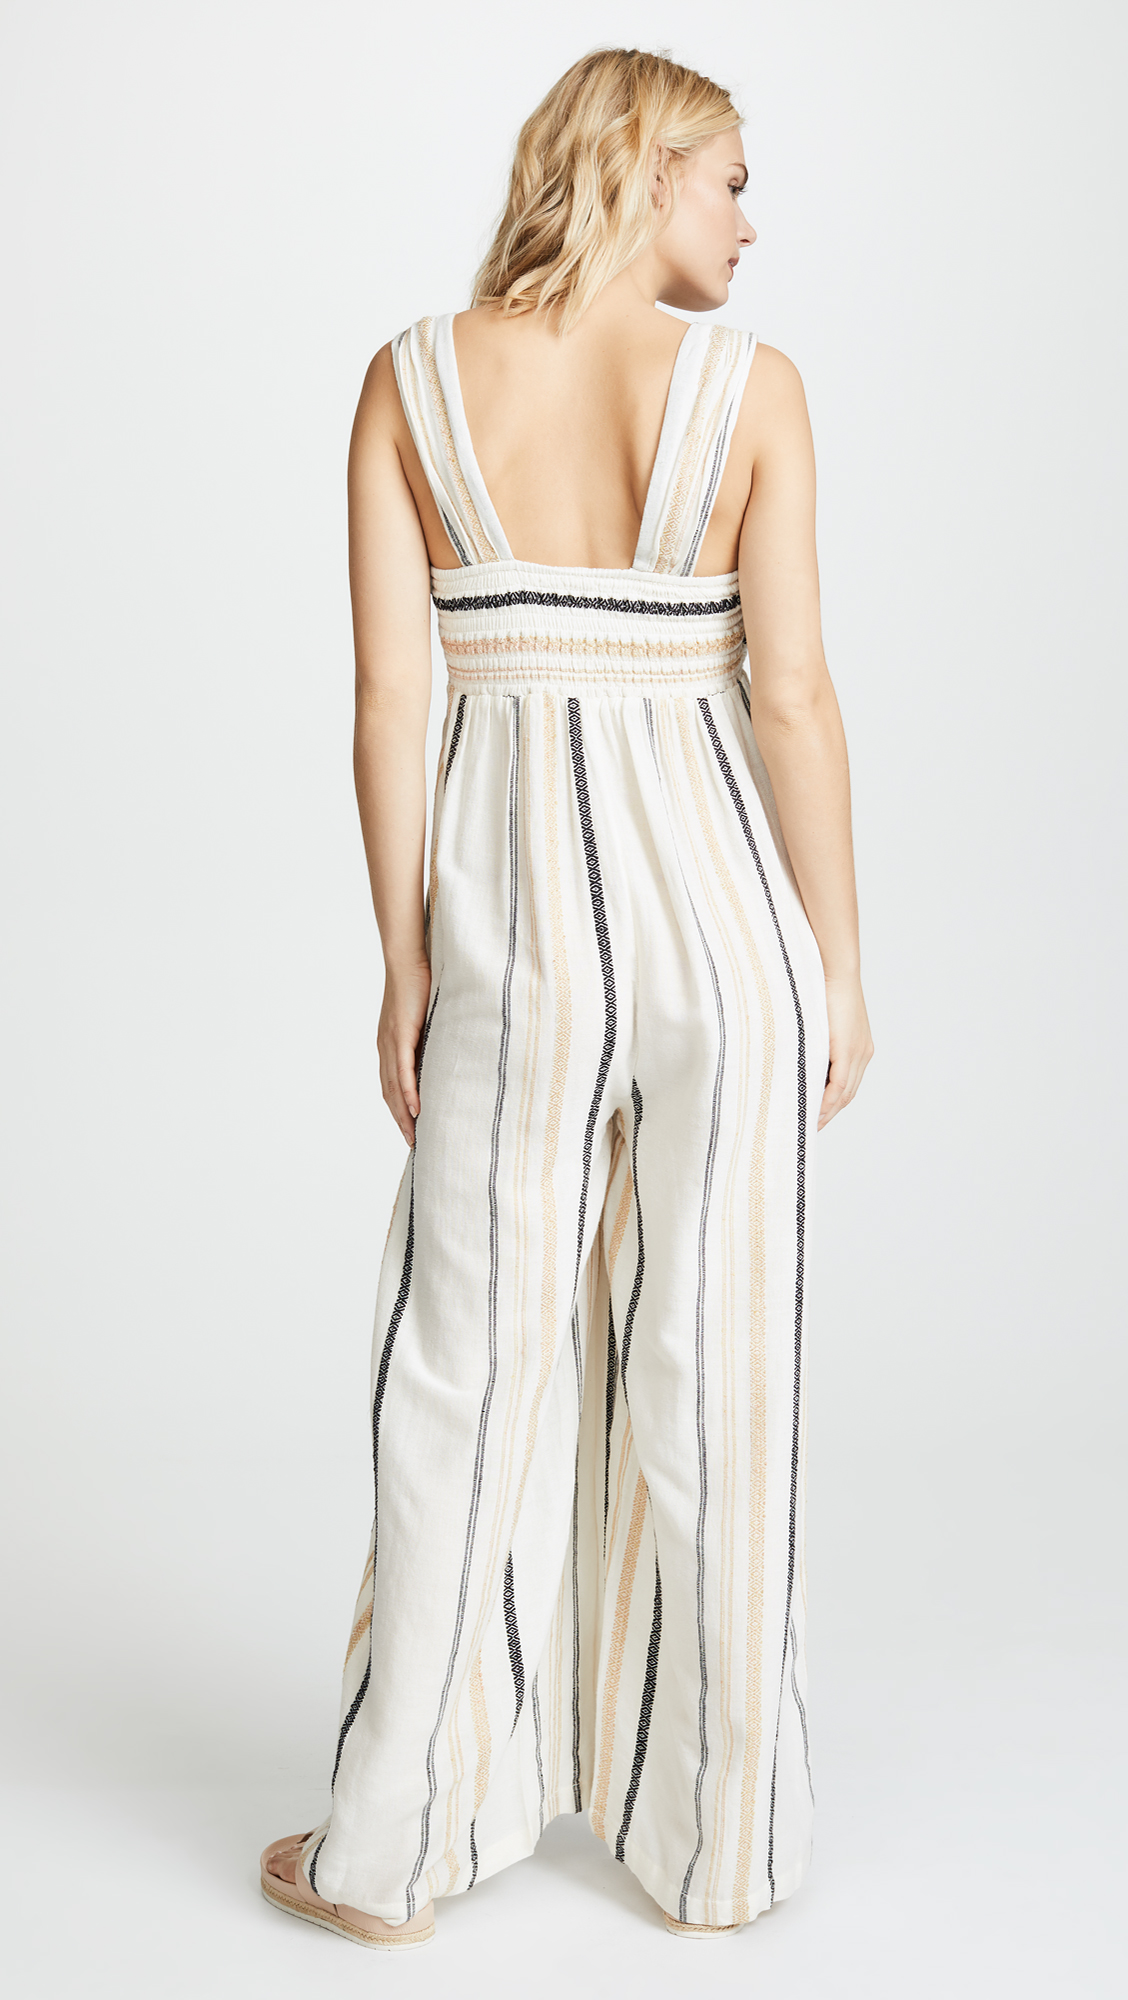 dfe3159d51c3 Free People Breezin Through Striped Jumpsuit